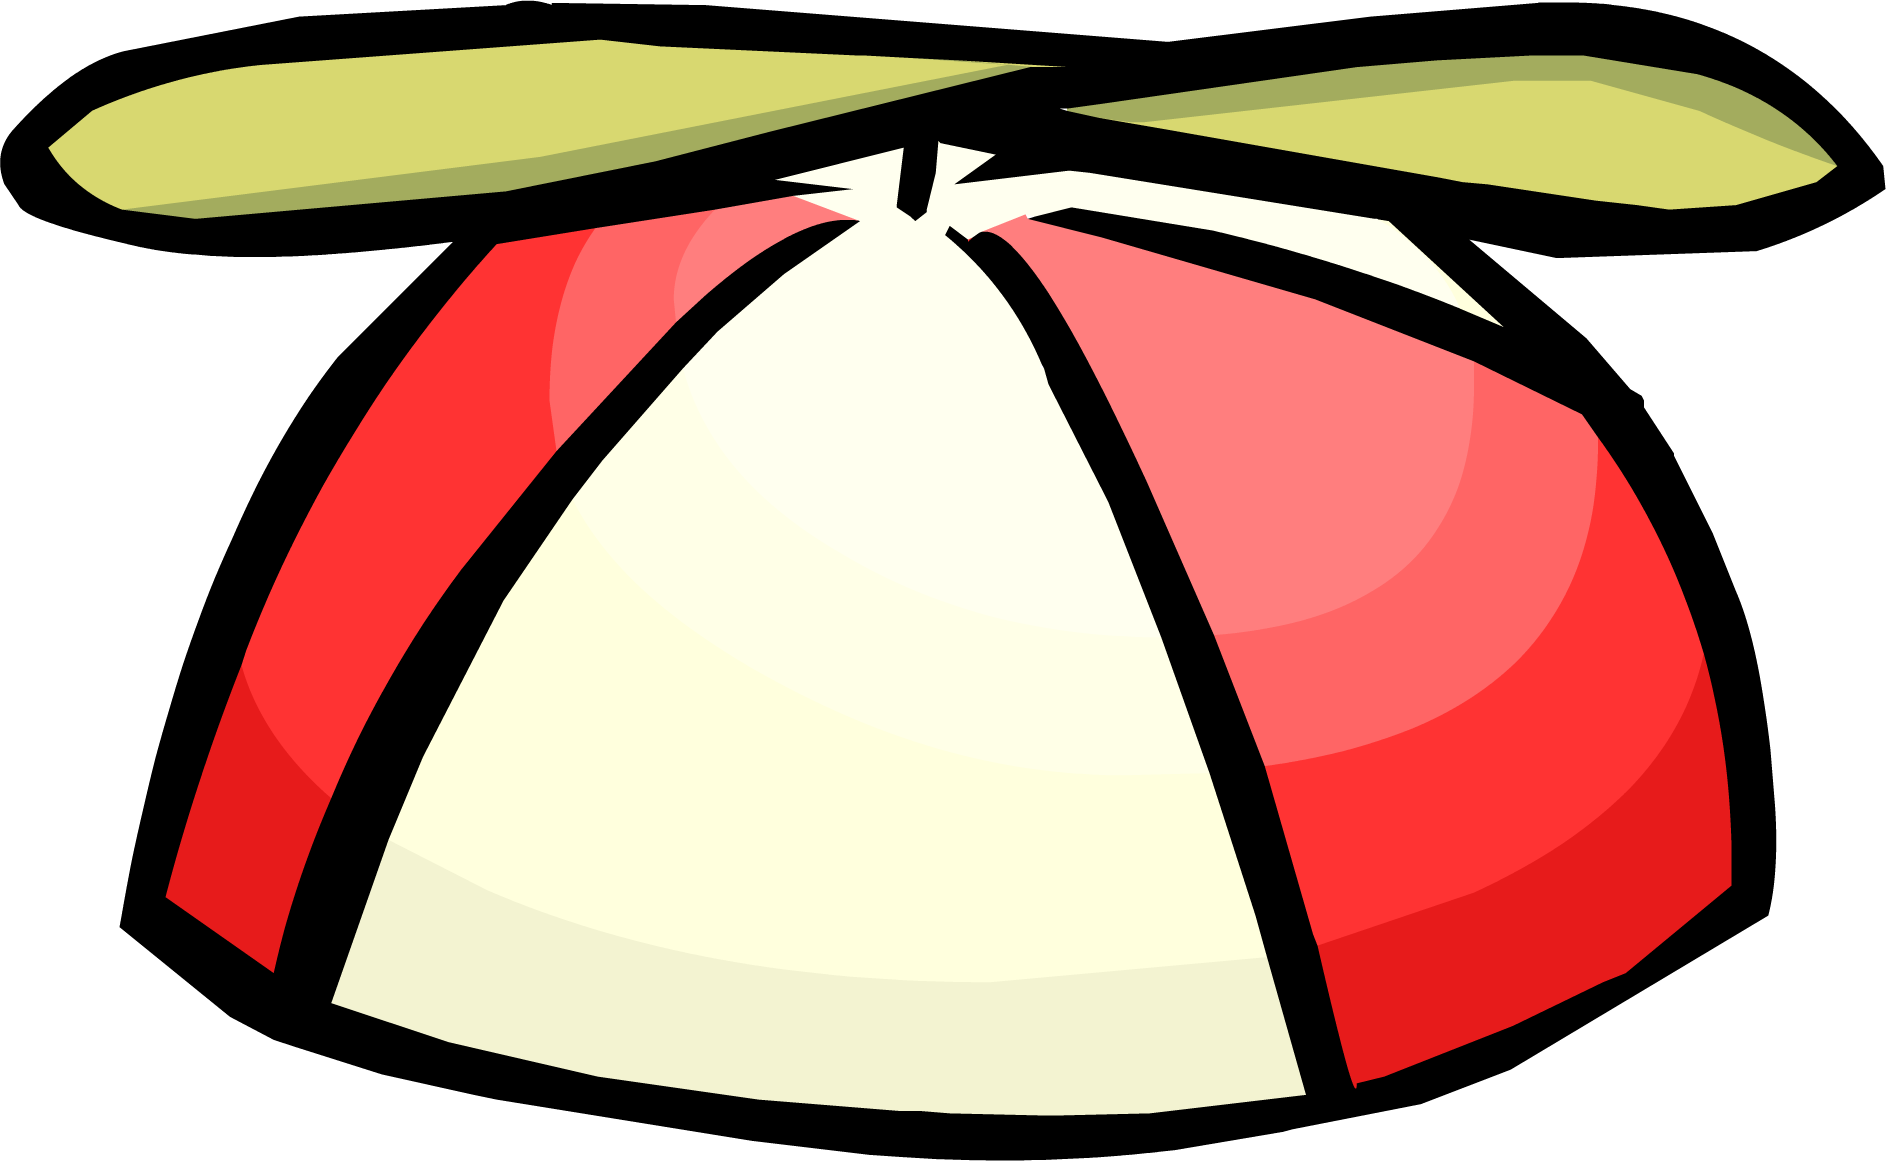 Helicopter hat png. Red propeller cap club